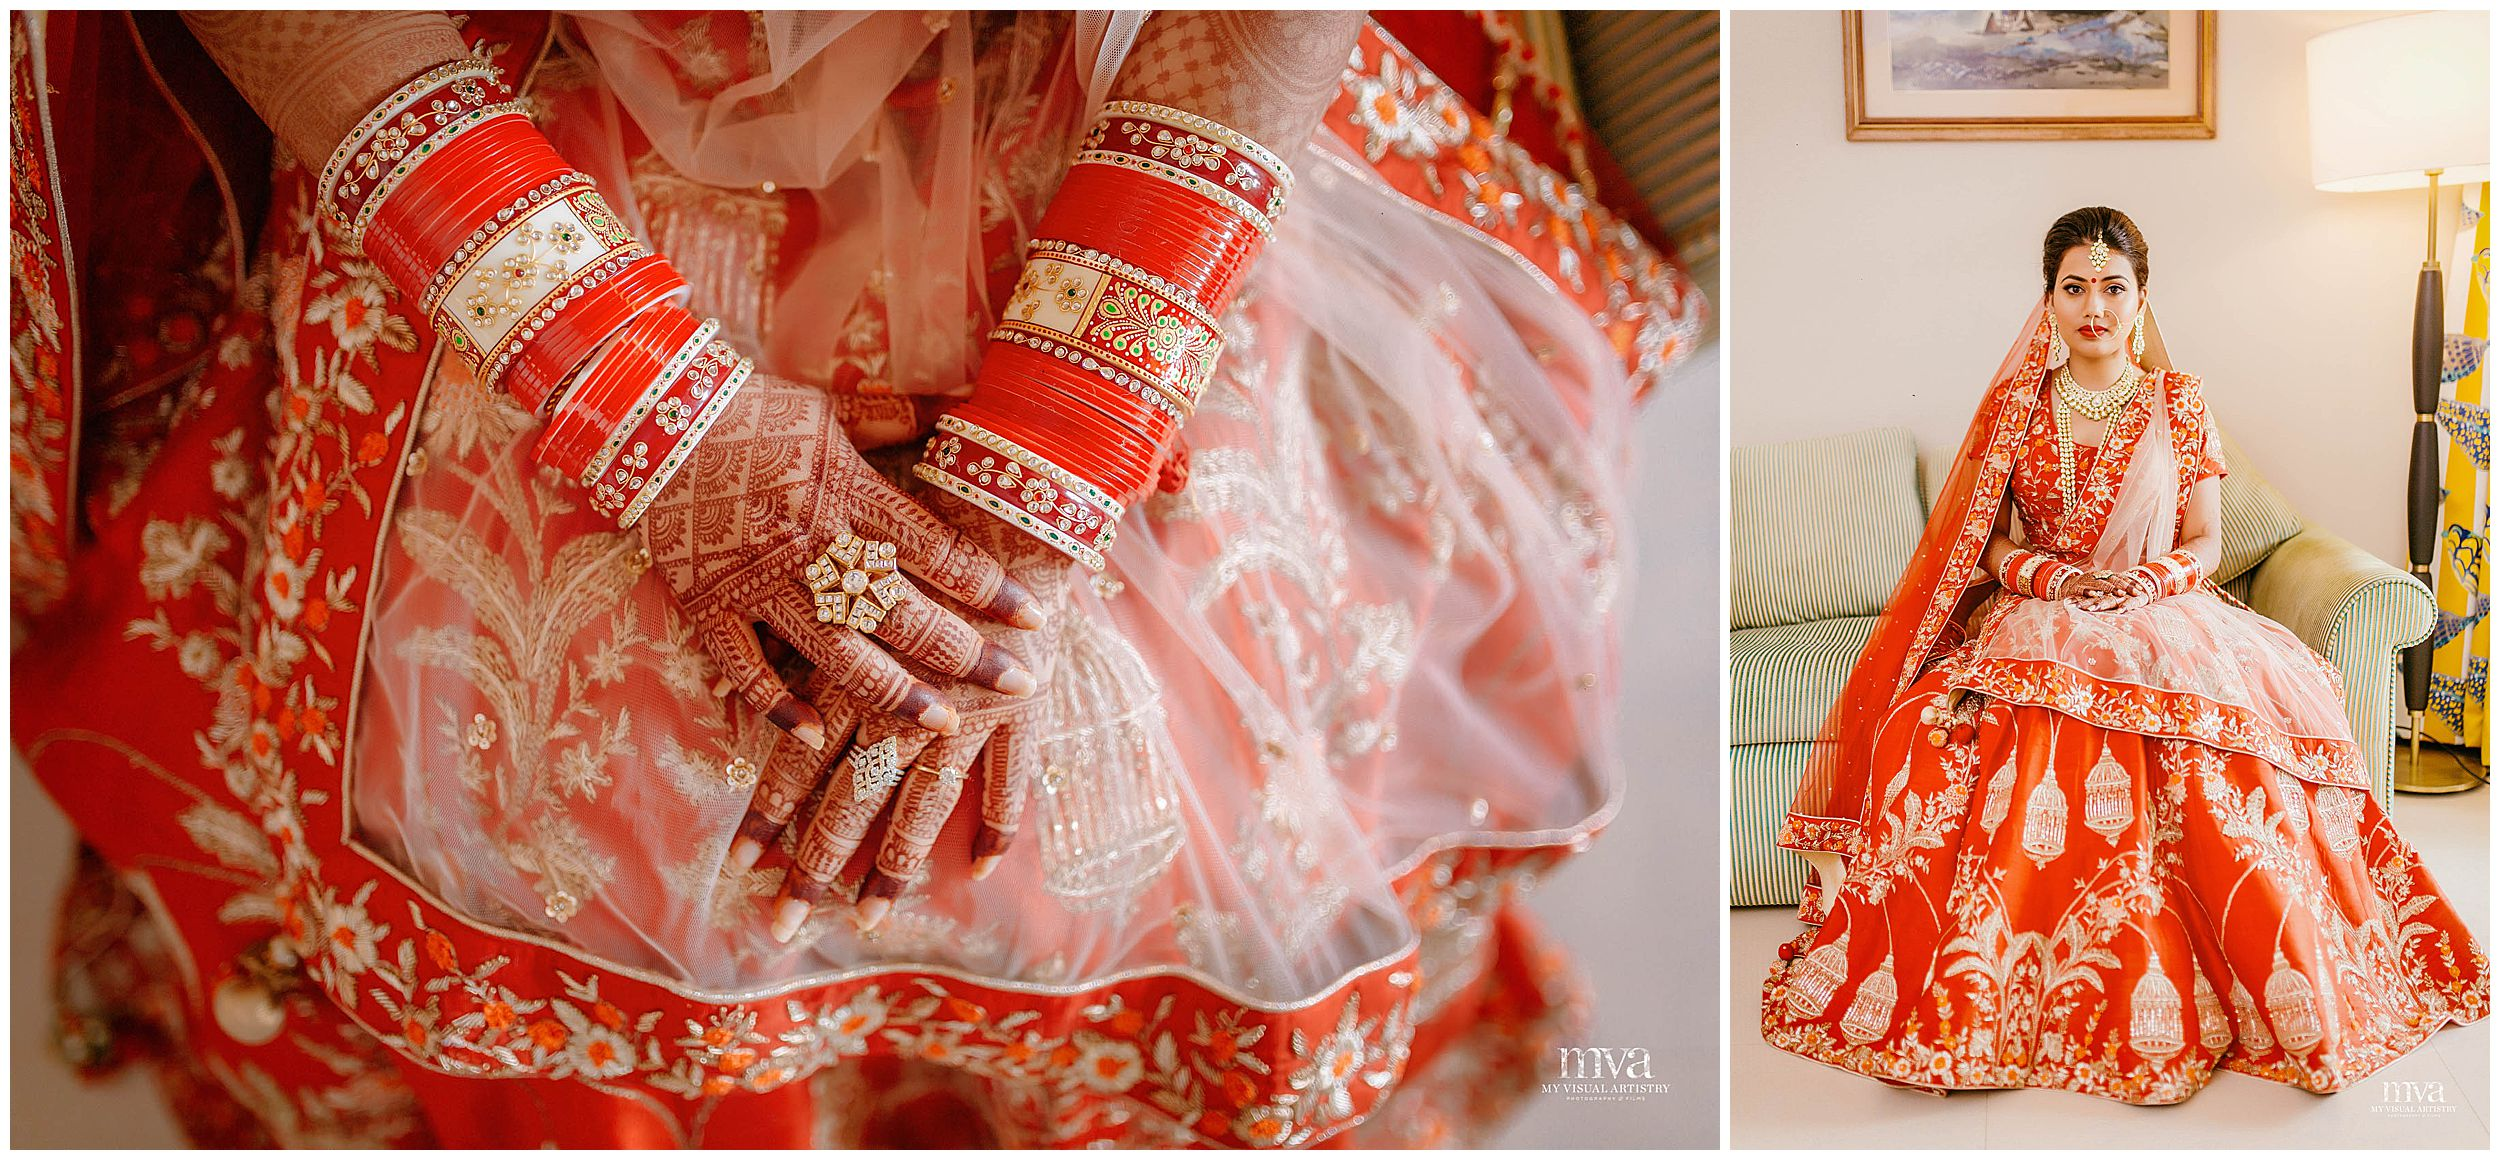 ROHIT_SANIYA_MYVISUALARTISTRY__WEDDING_PHOTOGRAPHER_GOA_DESTINATION_CAREVELA_RESORT_0009.jpg